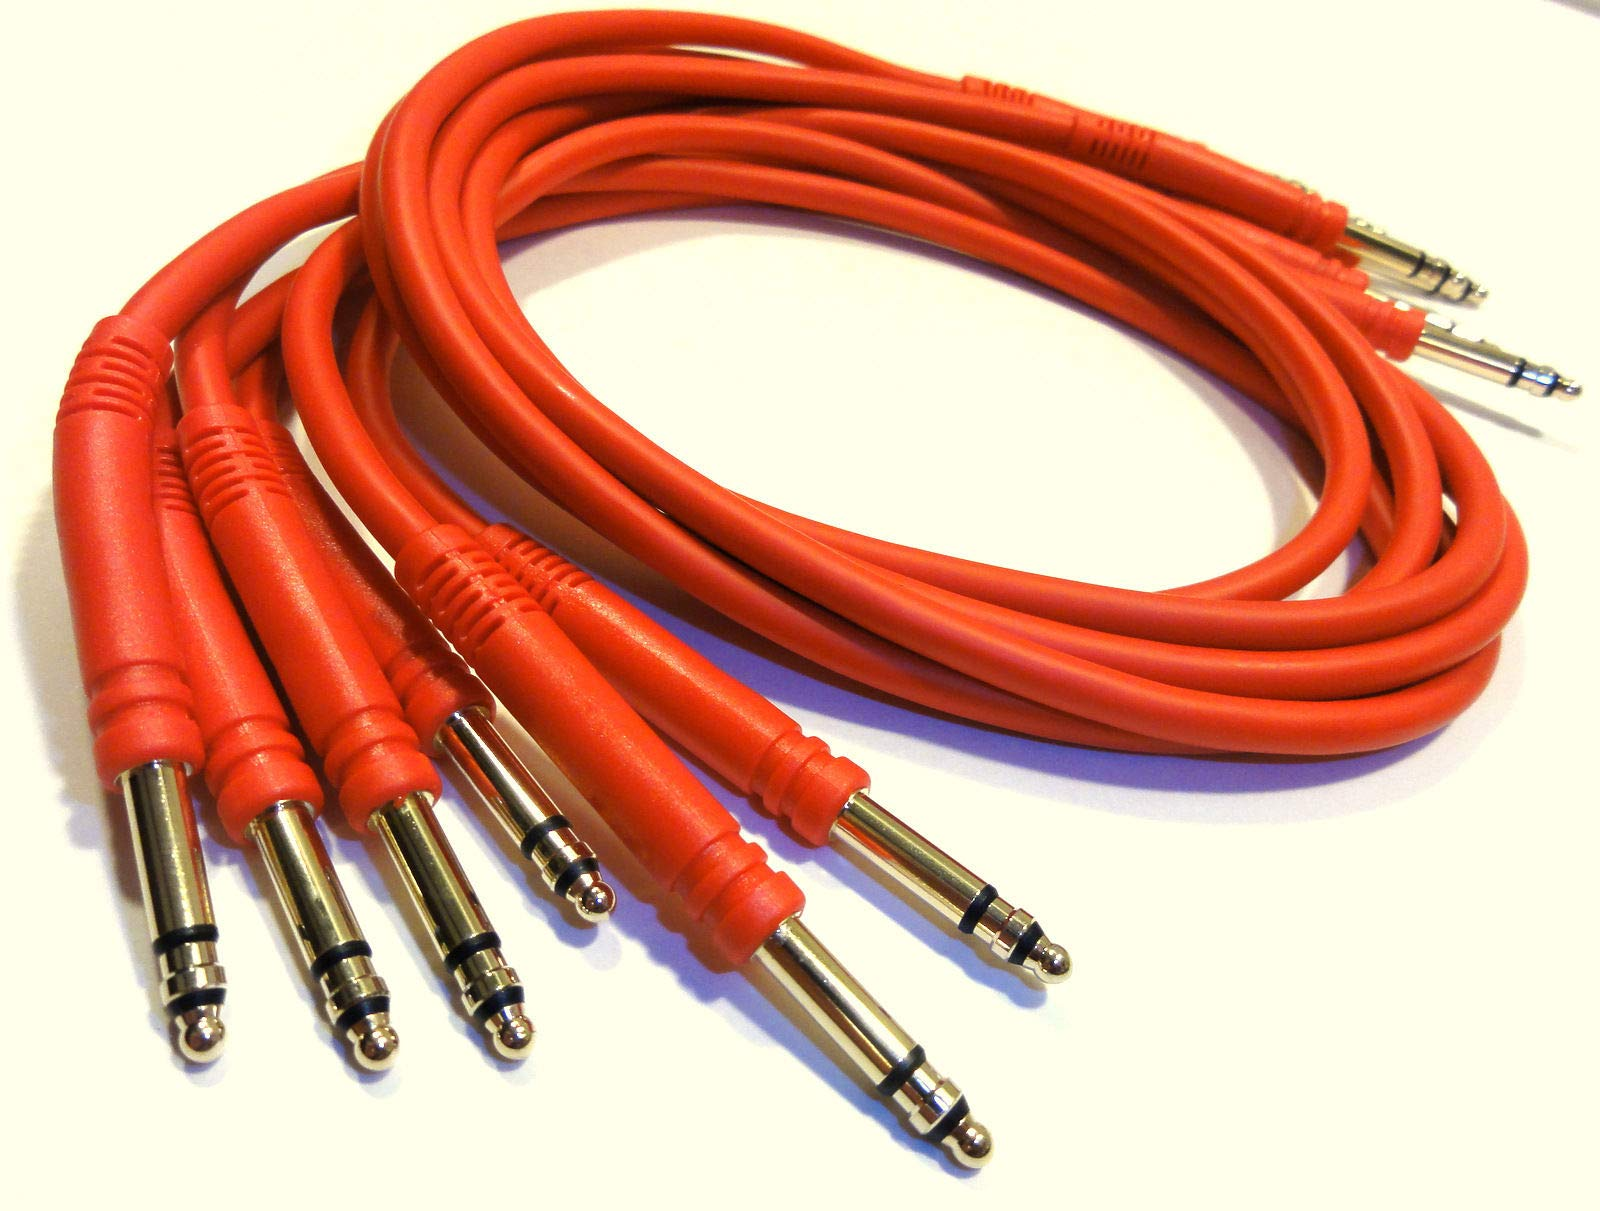 JDS Audio 6 TT Bantam 2 Foot Patch Cables - Red Quad Core Gold Plated 24''